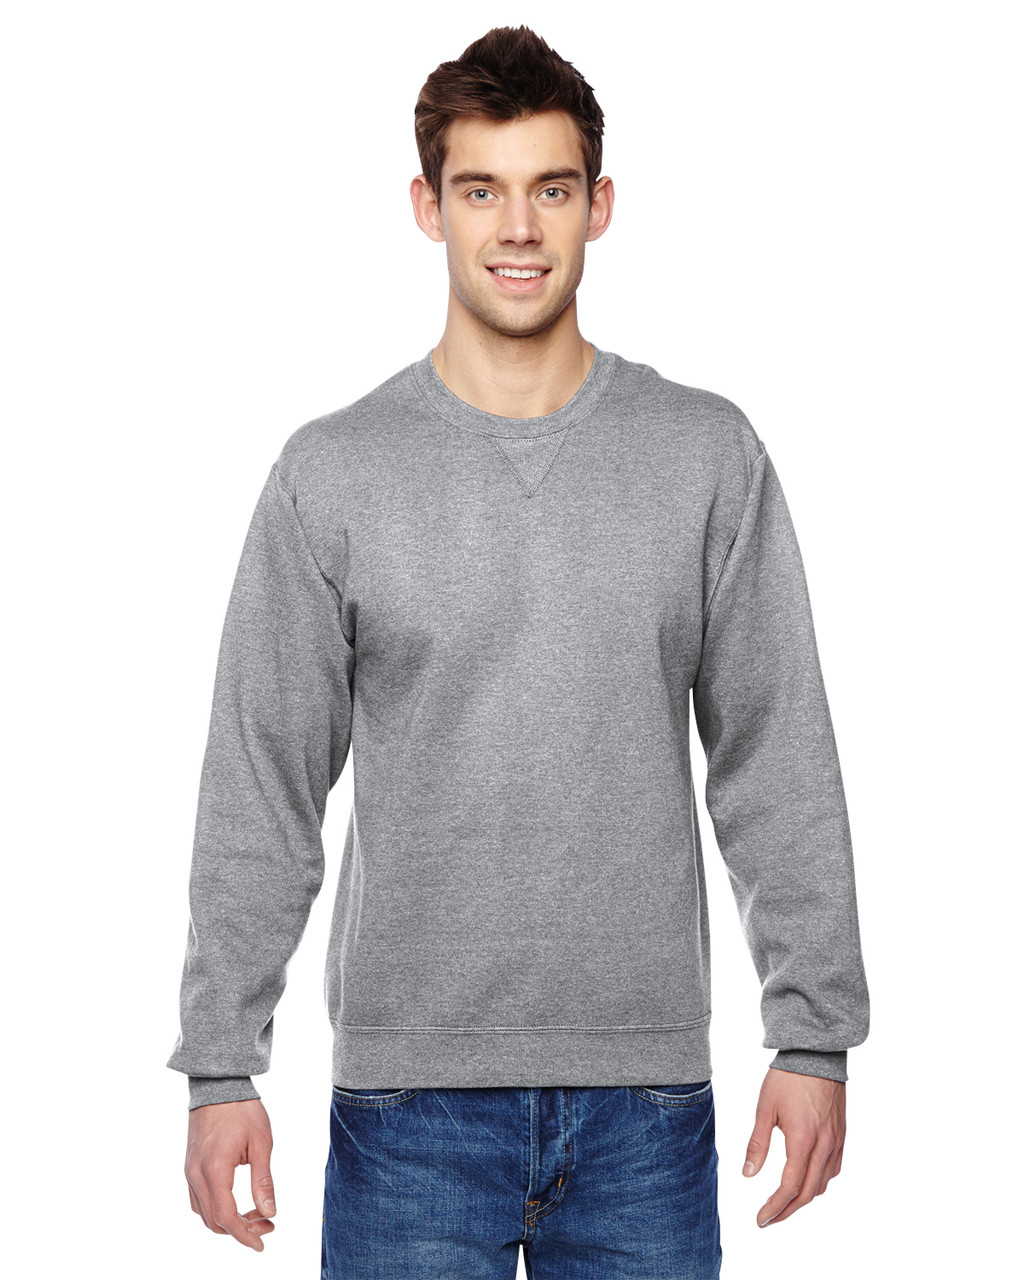 Athletic Heather SF72R Fruit of the Loom Sofspun® Crewneck Sweatshirt  | Blankclothing.ca